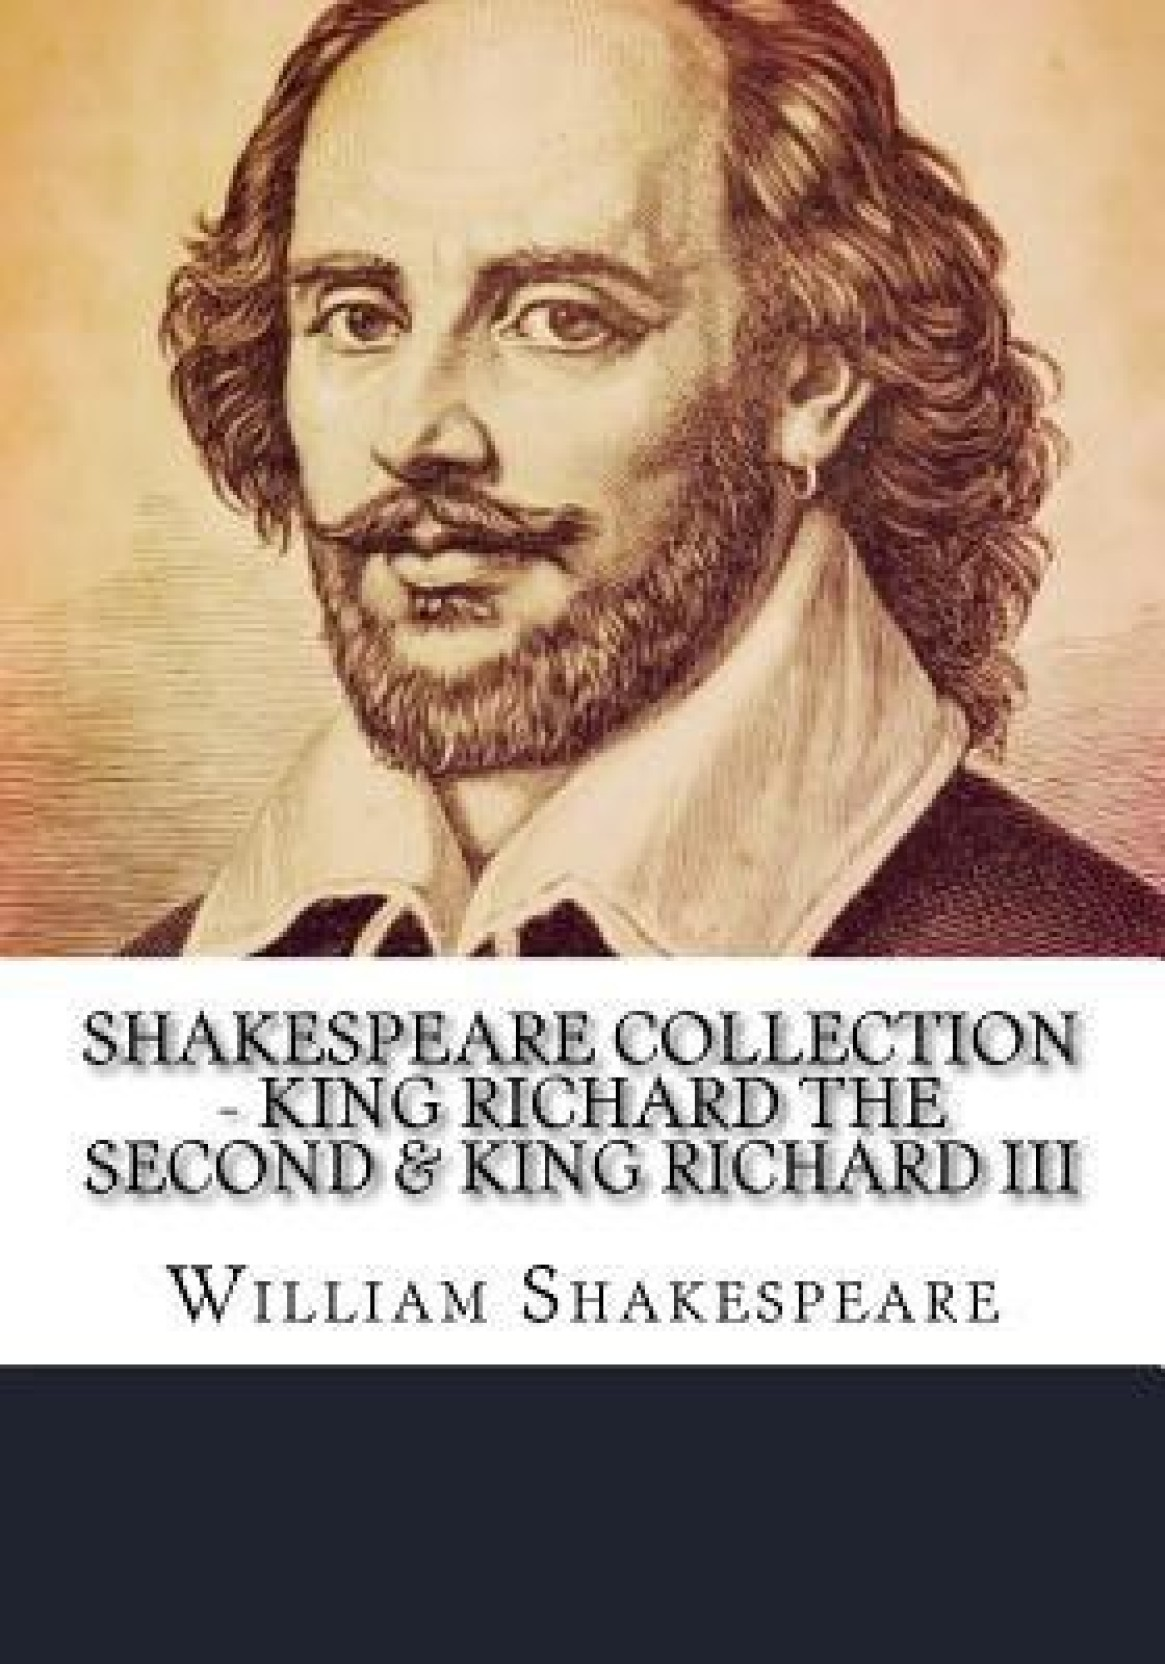 Shakespeare Collection King Richard The Second King